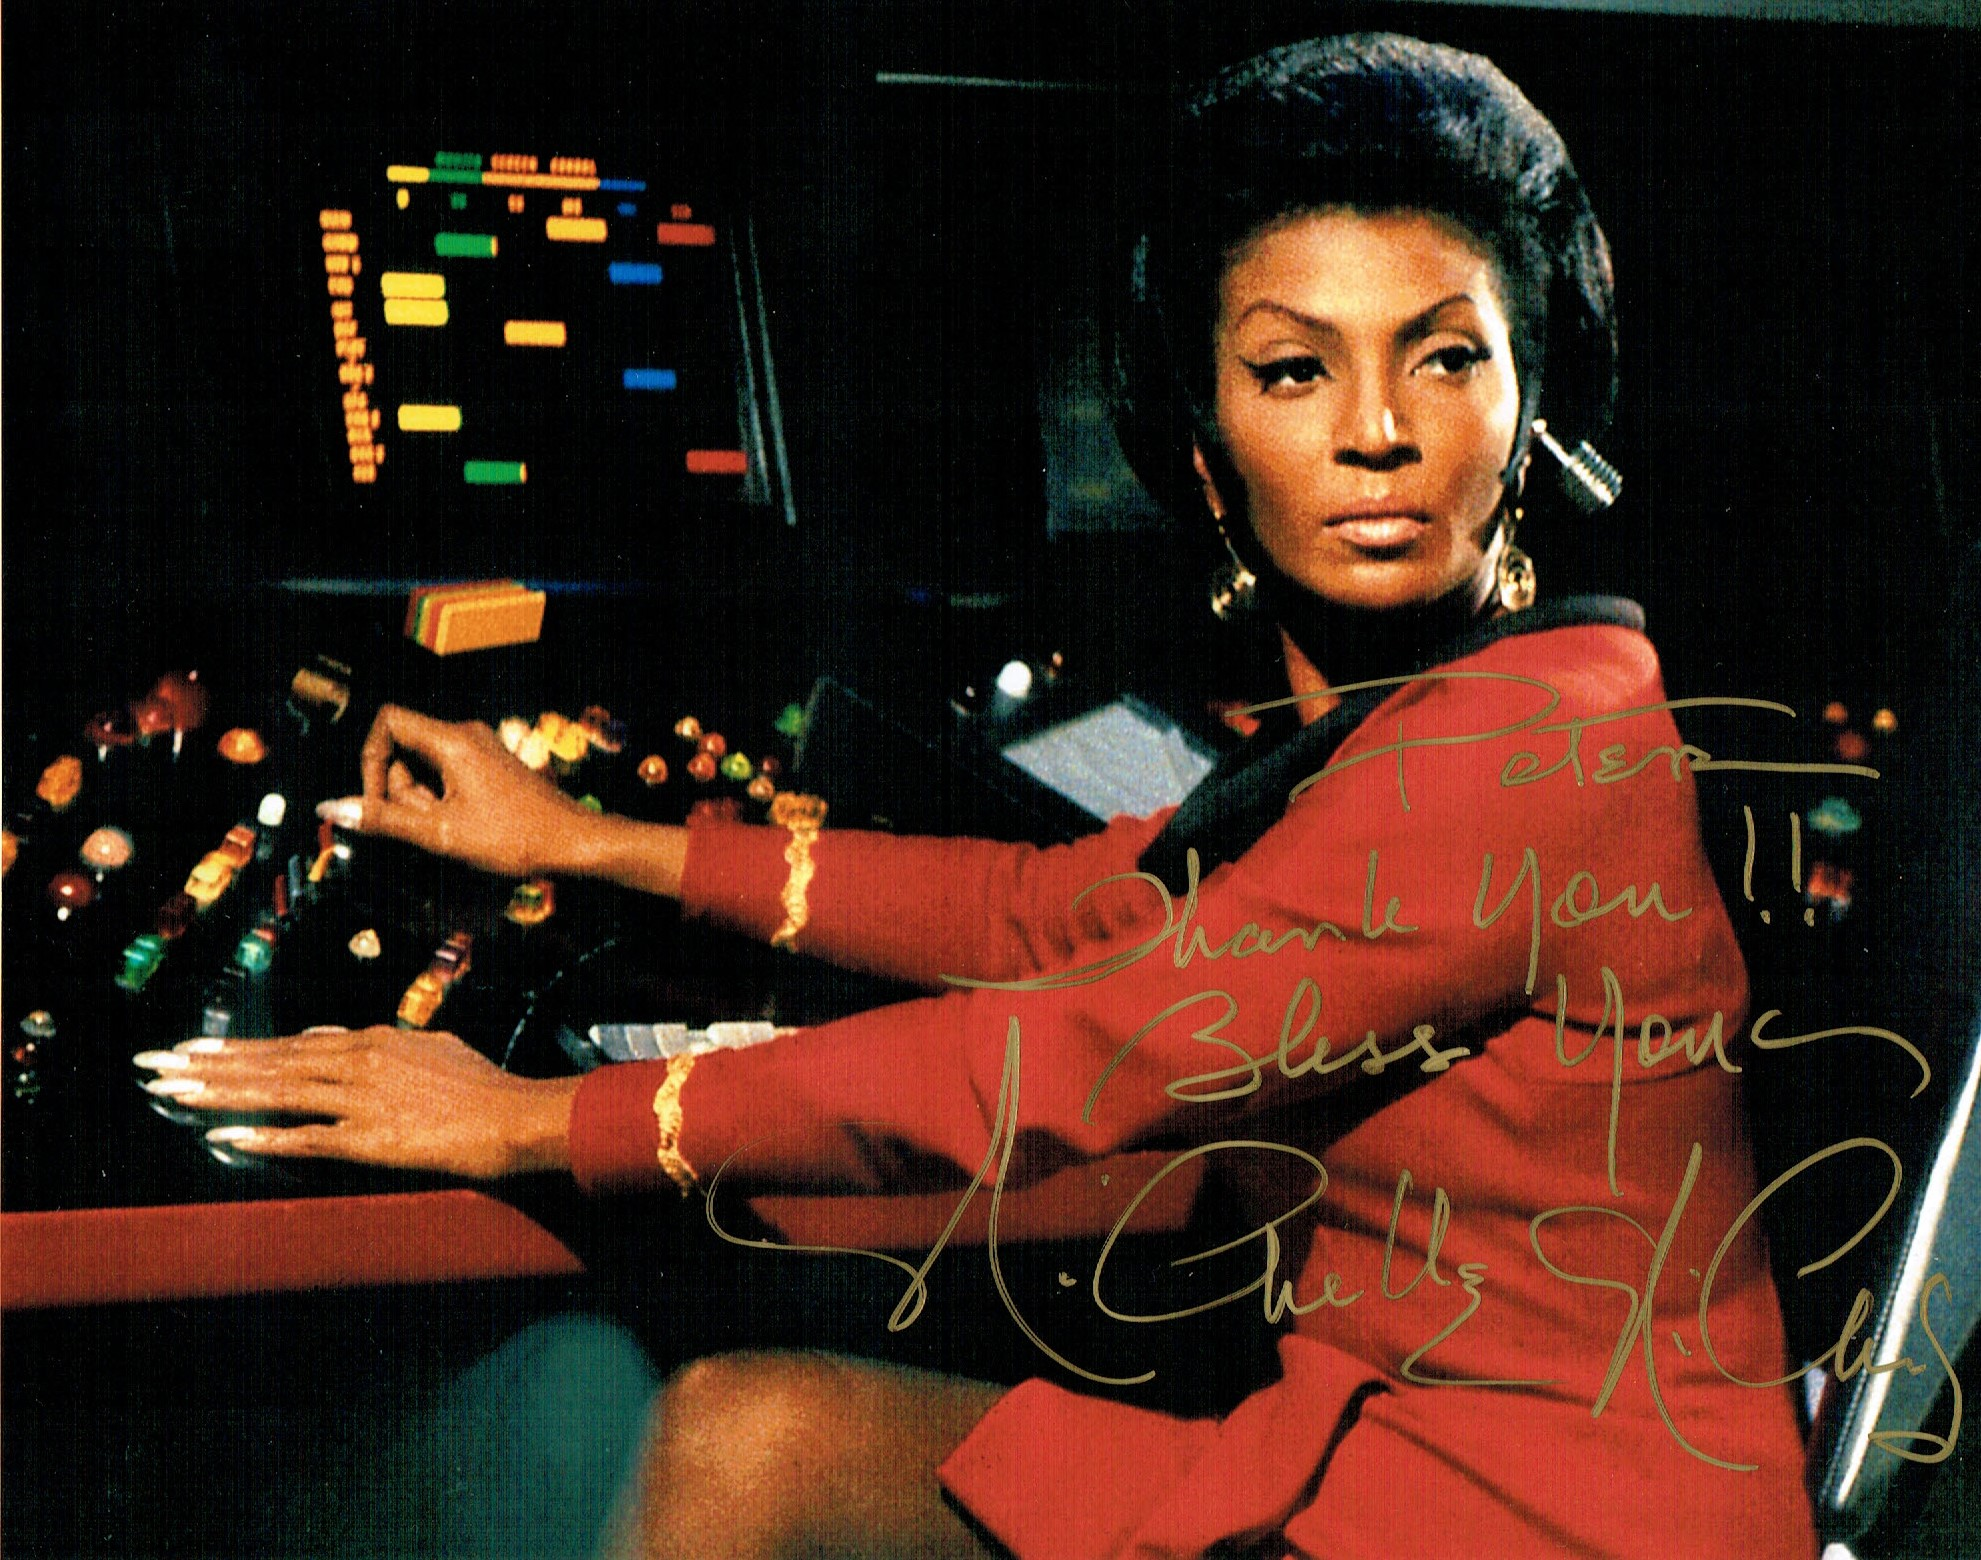 An autographed photo of Nichelle Nichols as Uhura, on the bridge of the Enterprise